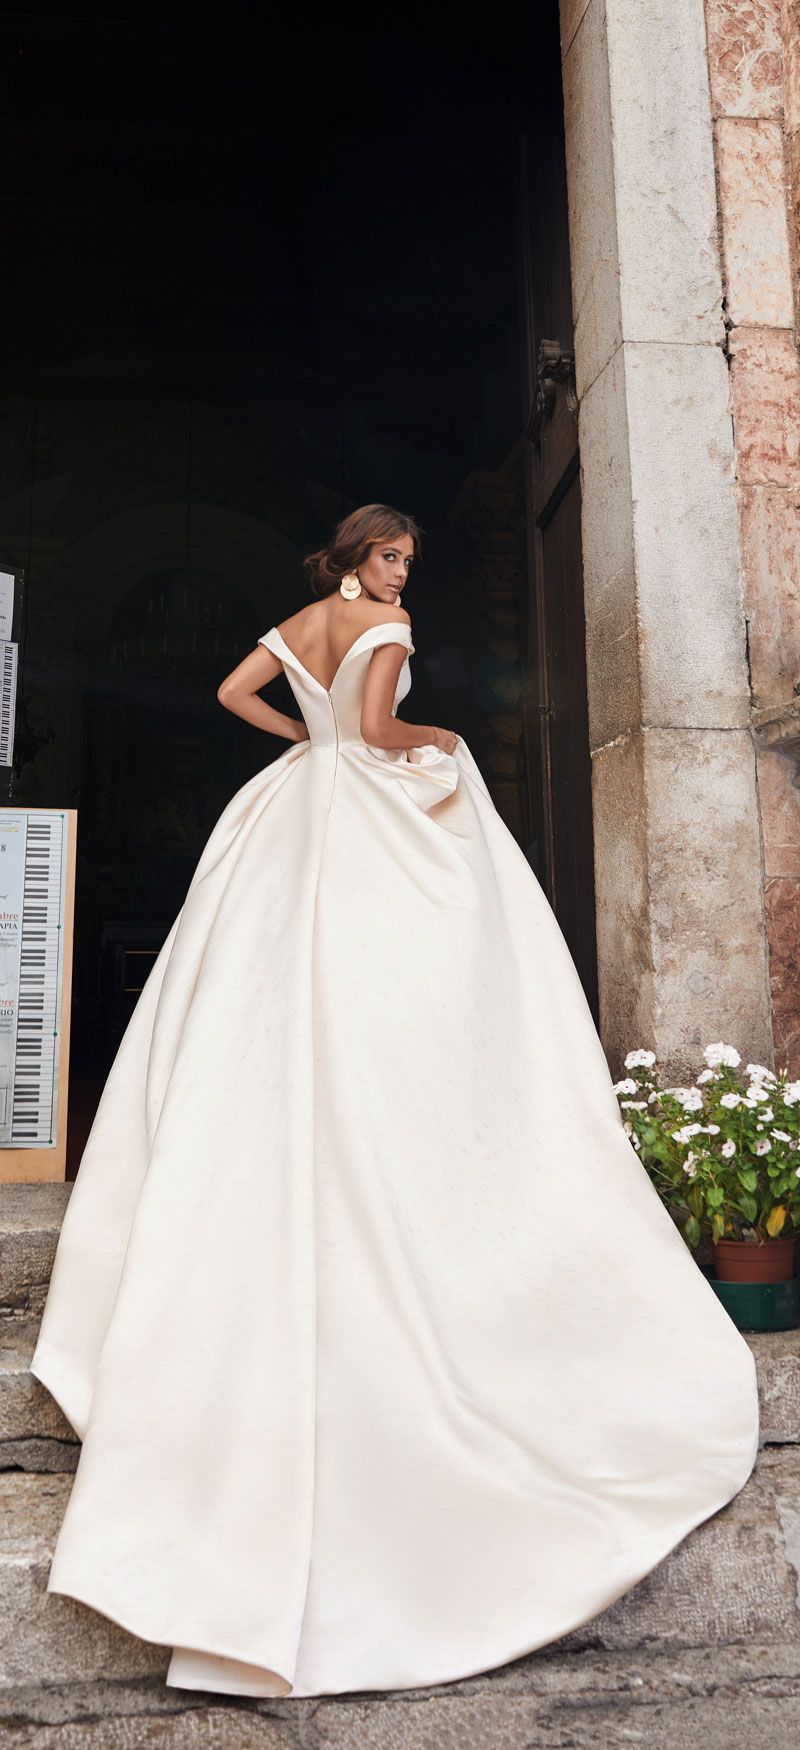 Stunning ball gown wedding dress inspiration